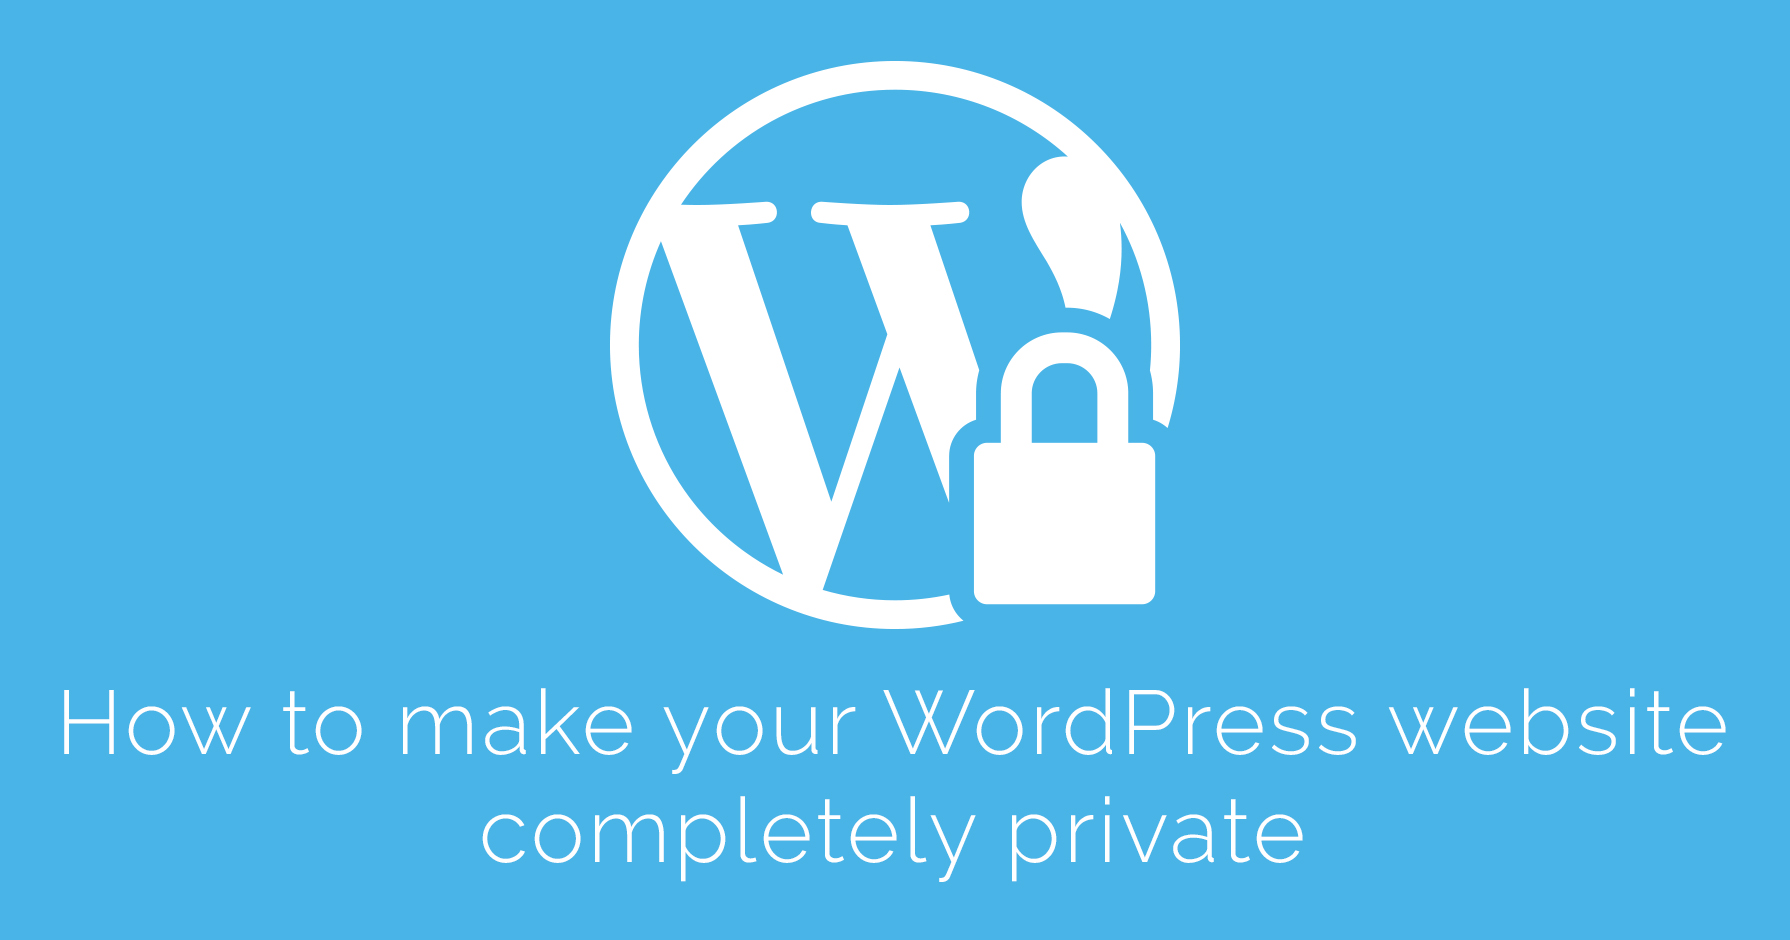 How to make your WordPress website completely private